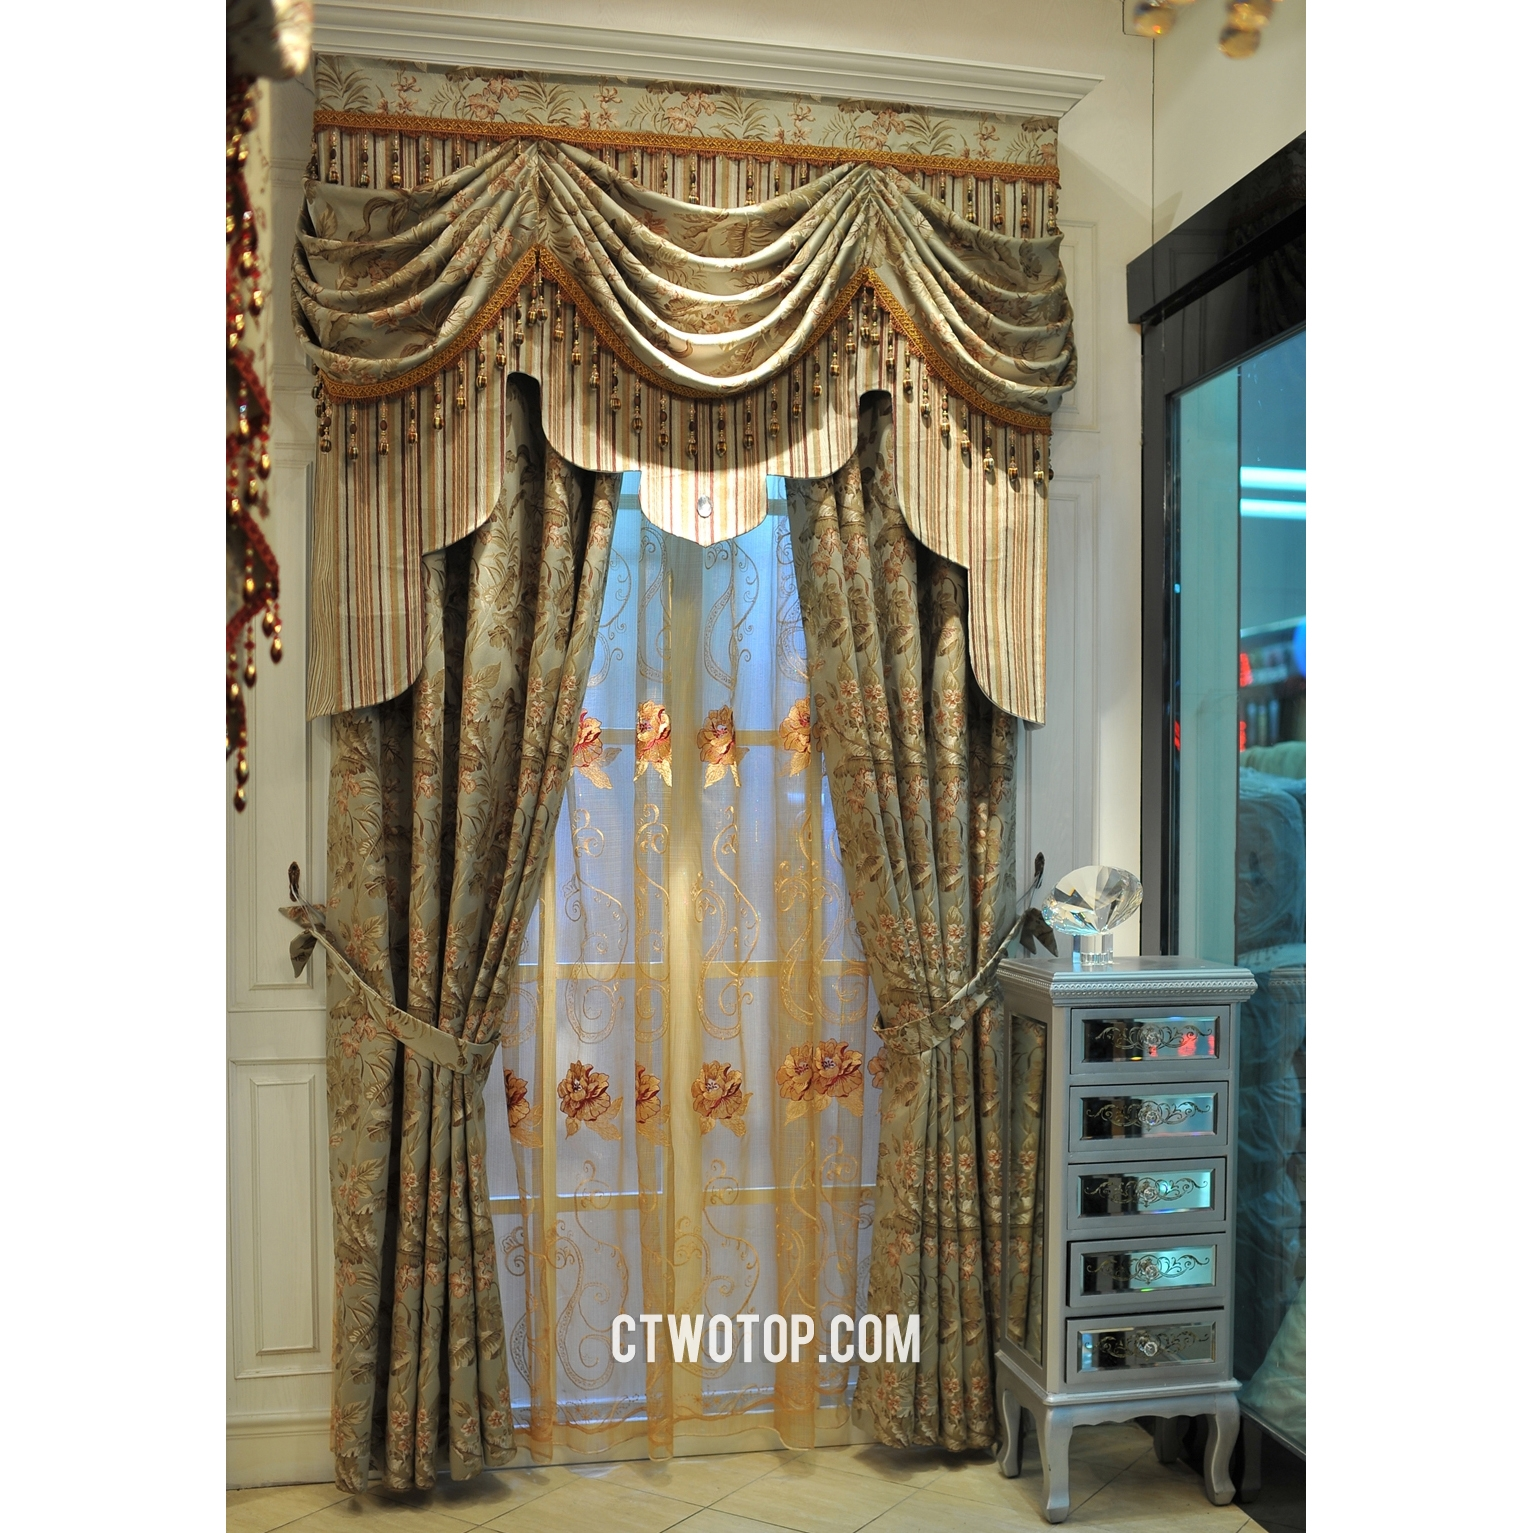 Exceptional Decorative Curtains For Living Room 1 Swag Curtain Inside 63 Inches Long Curtains (Image 13 of 25)